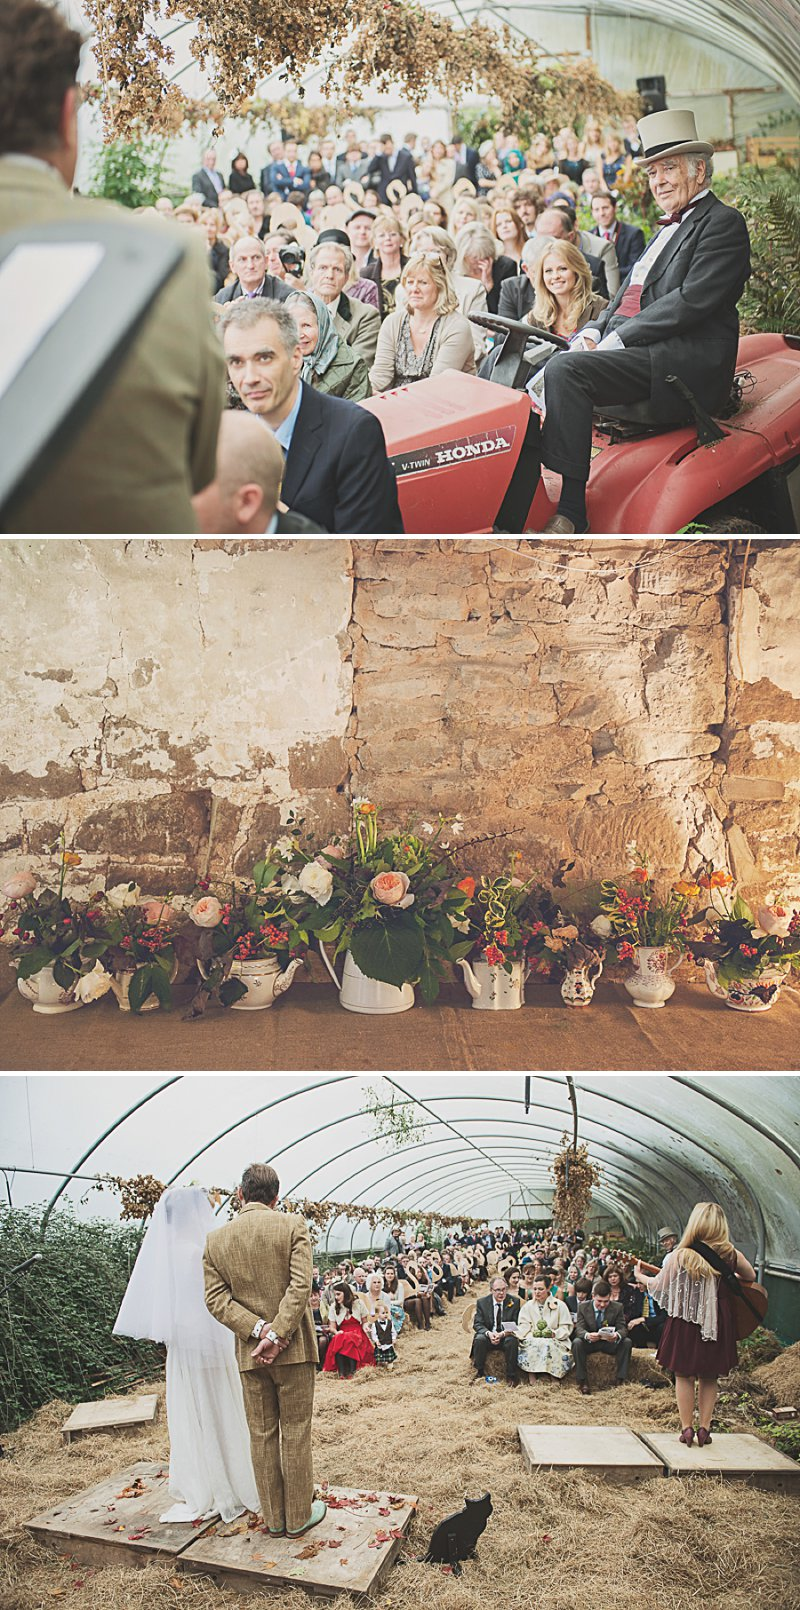 A DIY Wedding with homemade flowers, flamingo art, a polytunnel ceremony, apples, pumpkins, vintage dress and suit and vegetable bouquets.  Apple sharing ceremony at home with photography by Camilla Rosa_0009